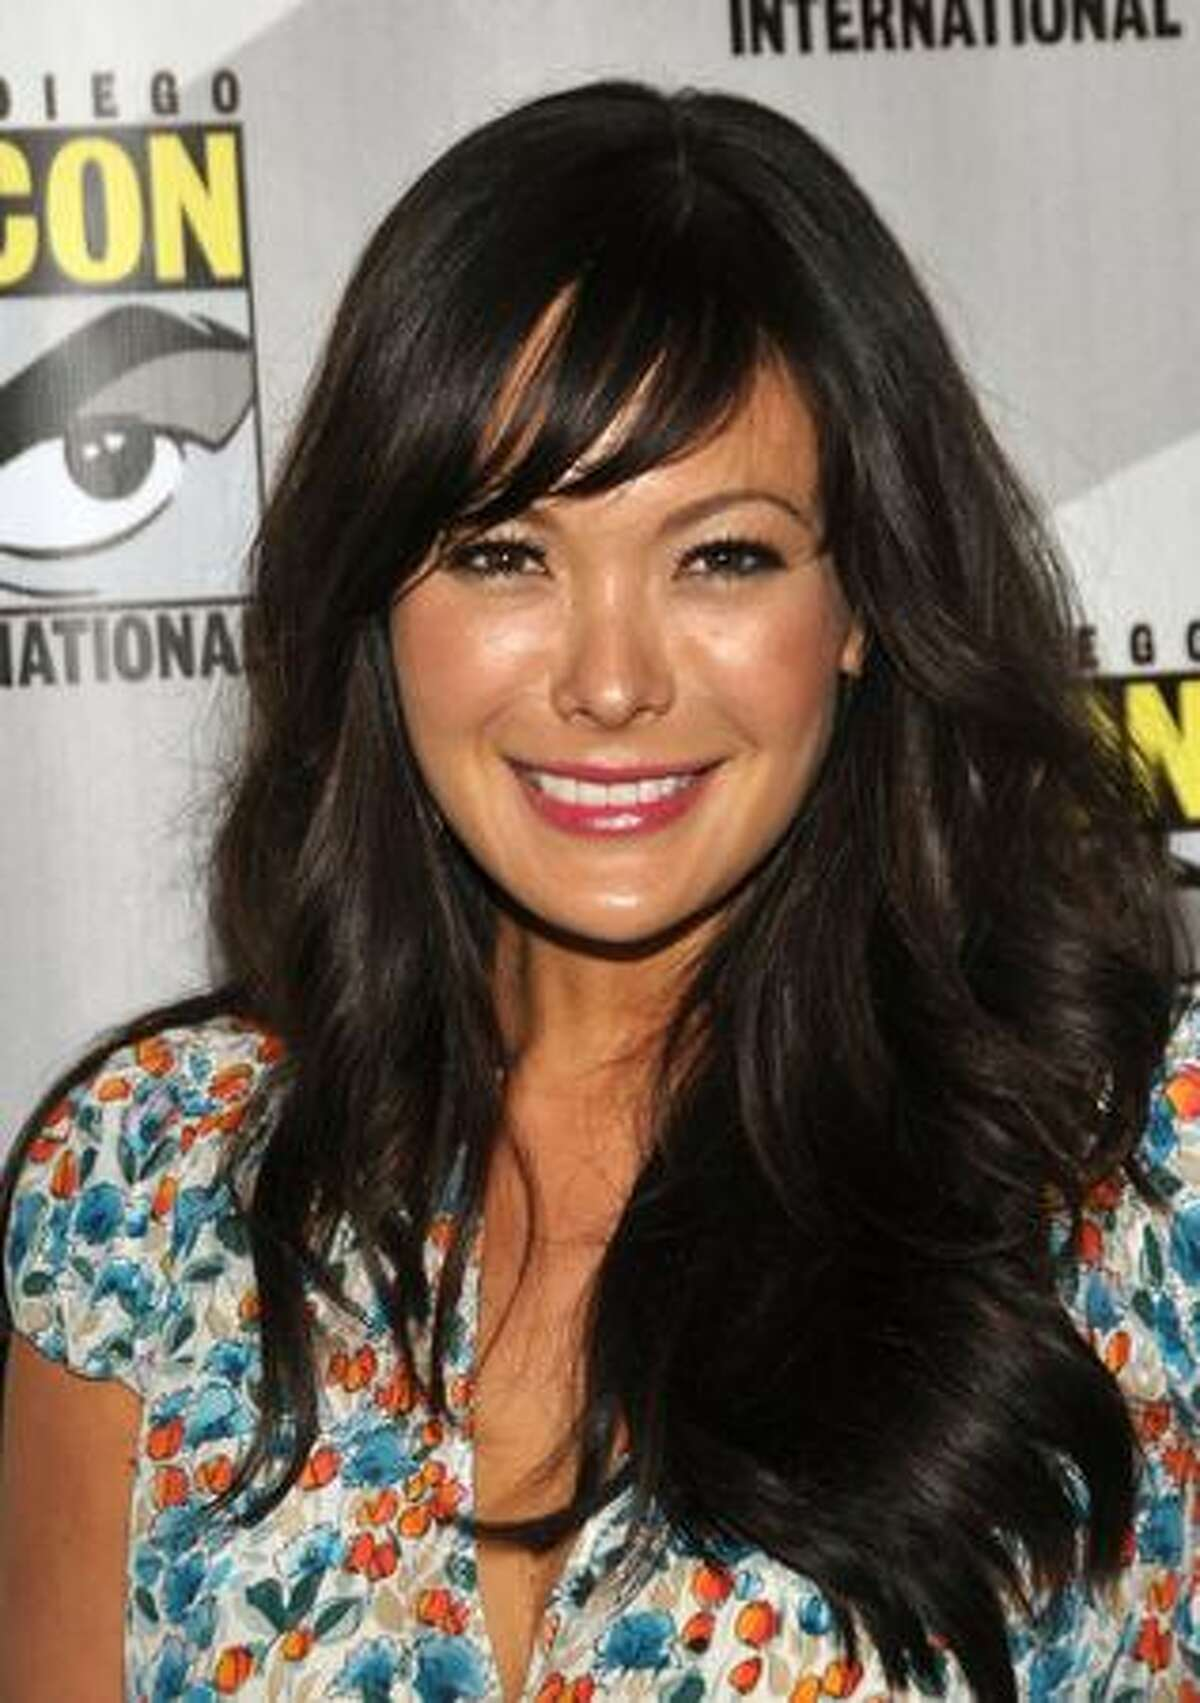 """SAN DIEGO - JULY 25: Actress Lindsay Price attends the """"Eastwick""""pilot screening at Comic-Con 2009 held at San Diego Convention Center on July 25, 2009 in San Diego, California."""